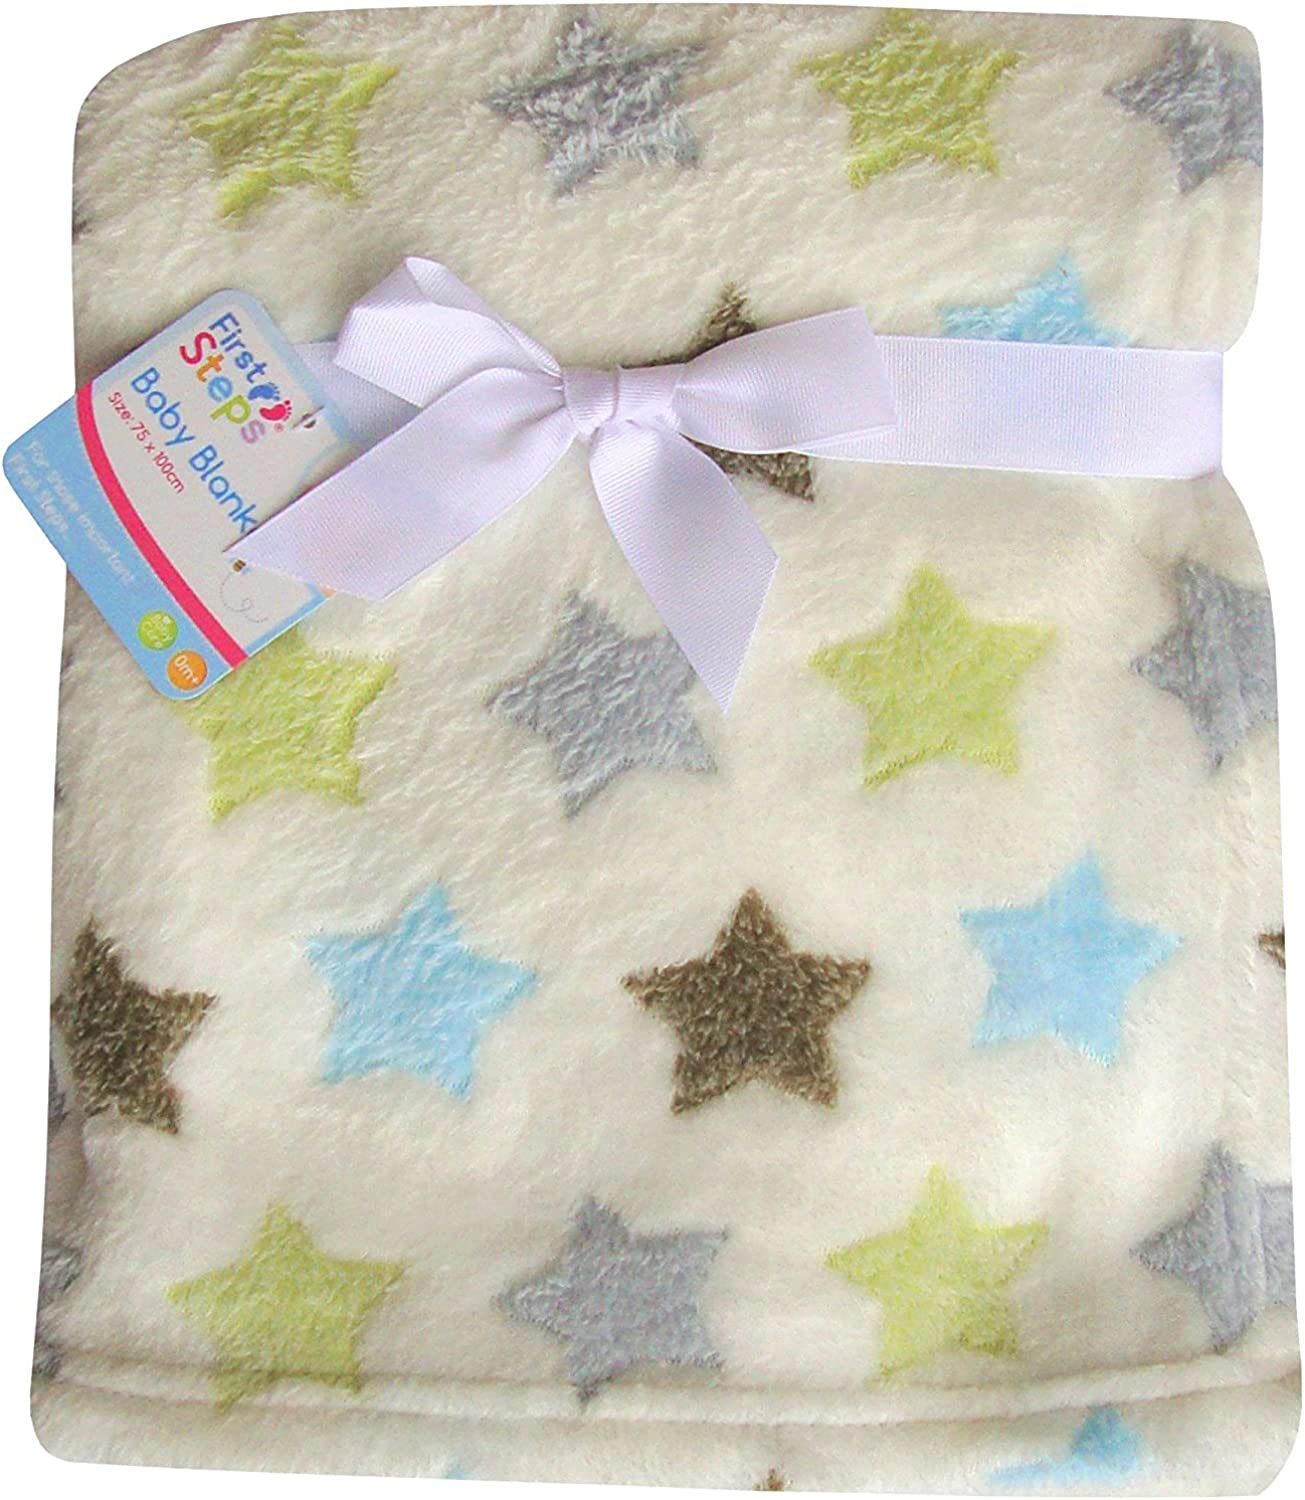 First Steps Luxury Soft Fleece Baby Blanket in Cute Elephant Design 75 x 100cm for Babies from Newborn by First Steps